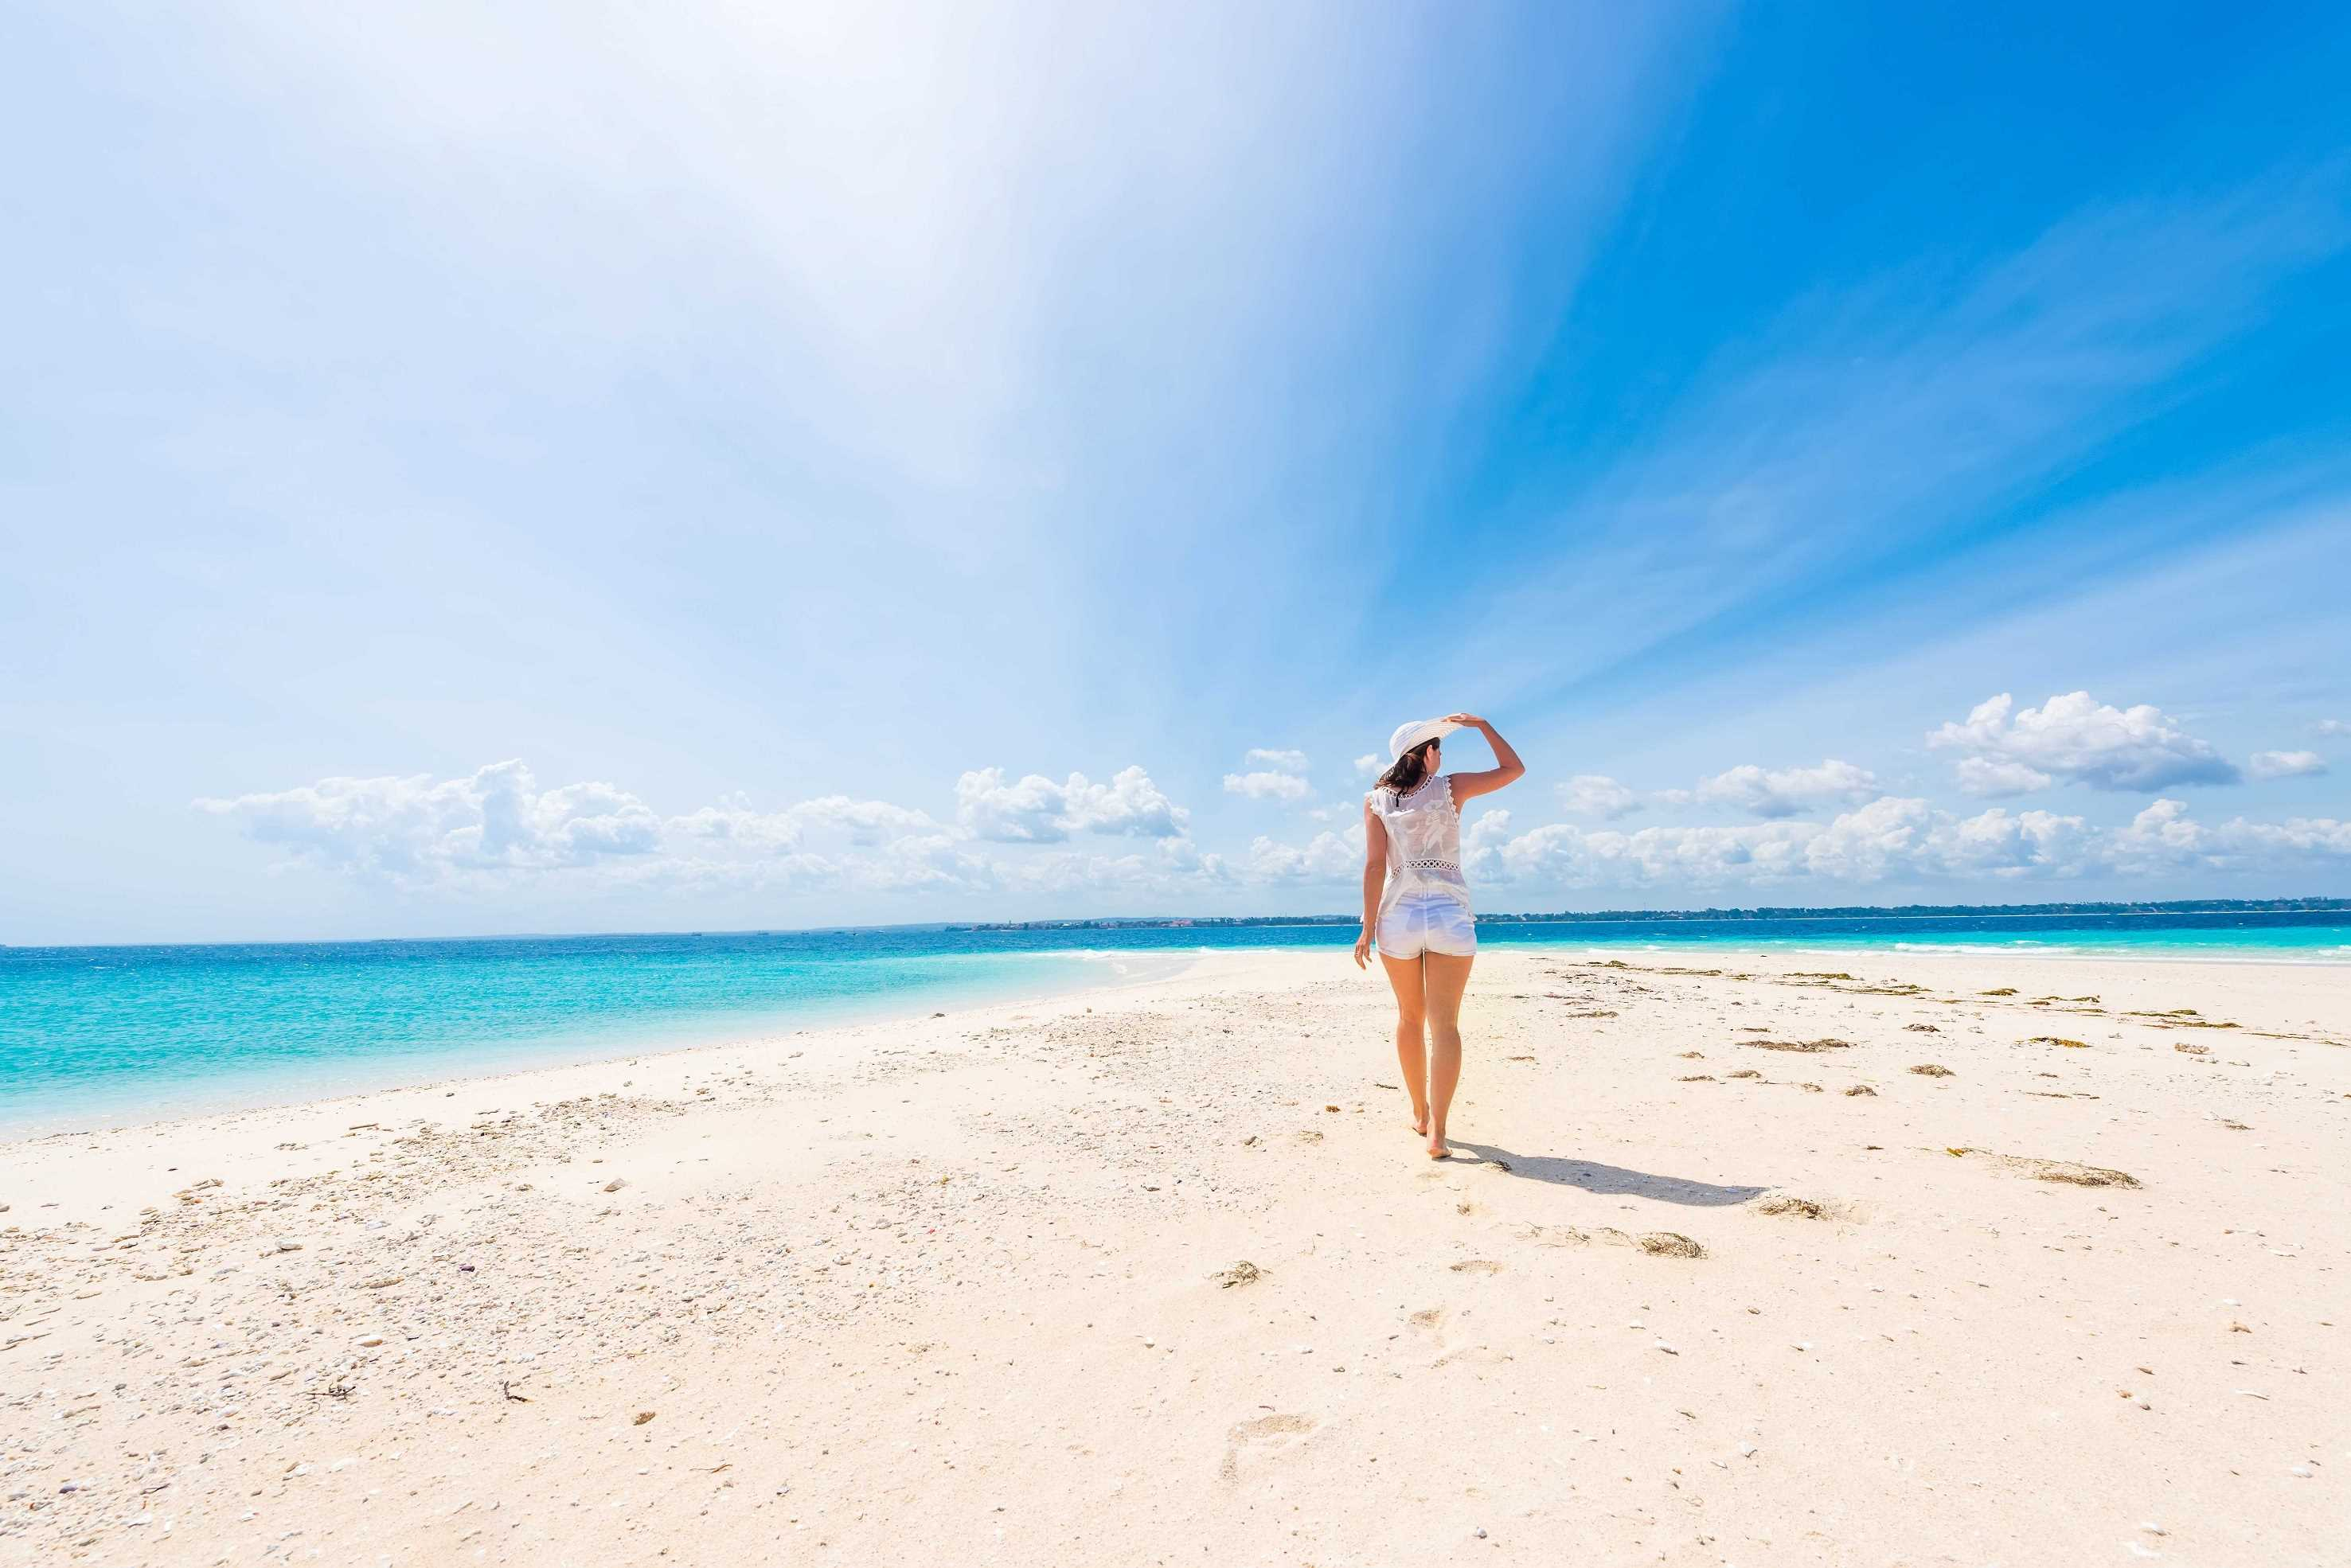 Lady on a White Sand Beach